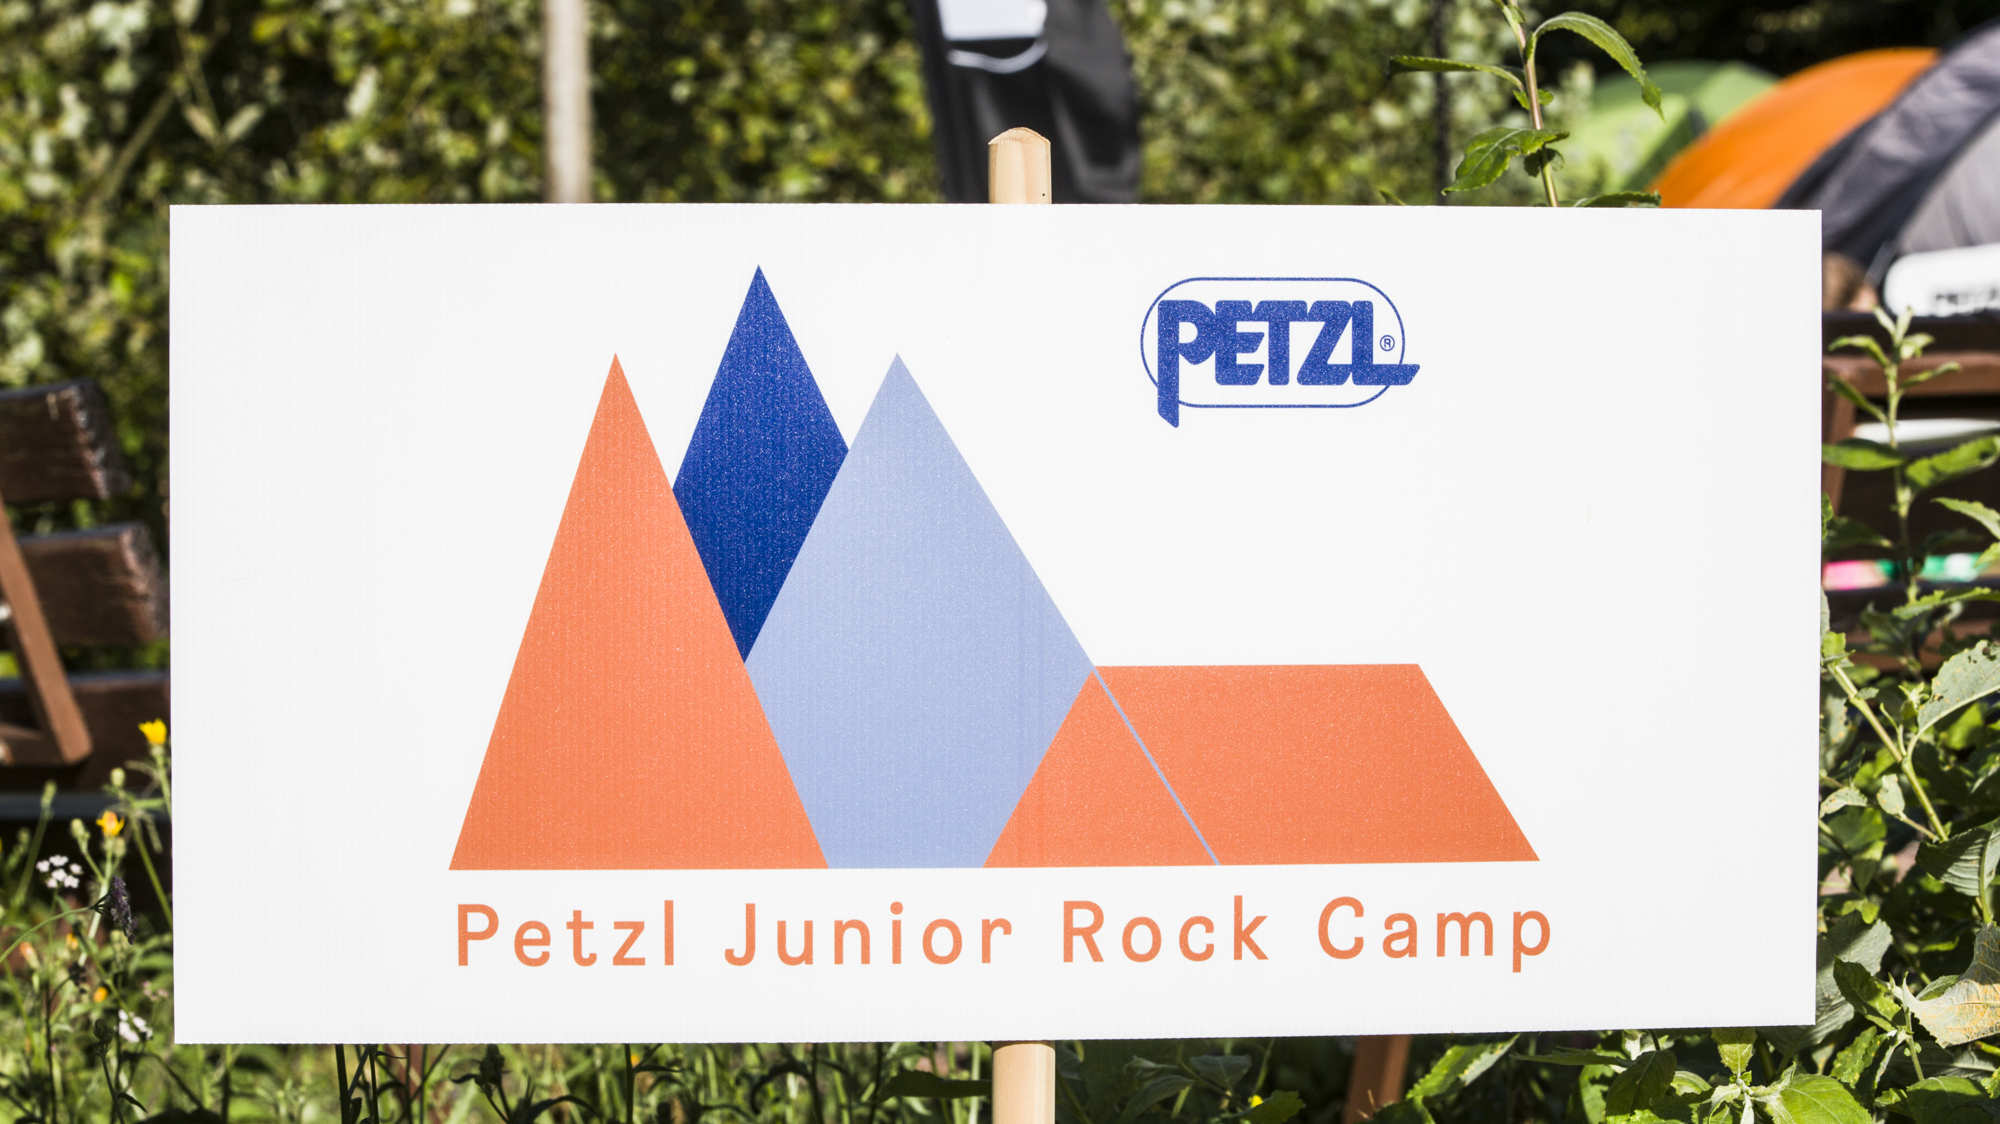 Absage des Petzl Junior Rock Camps 2020